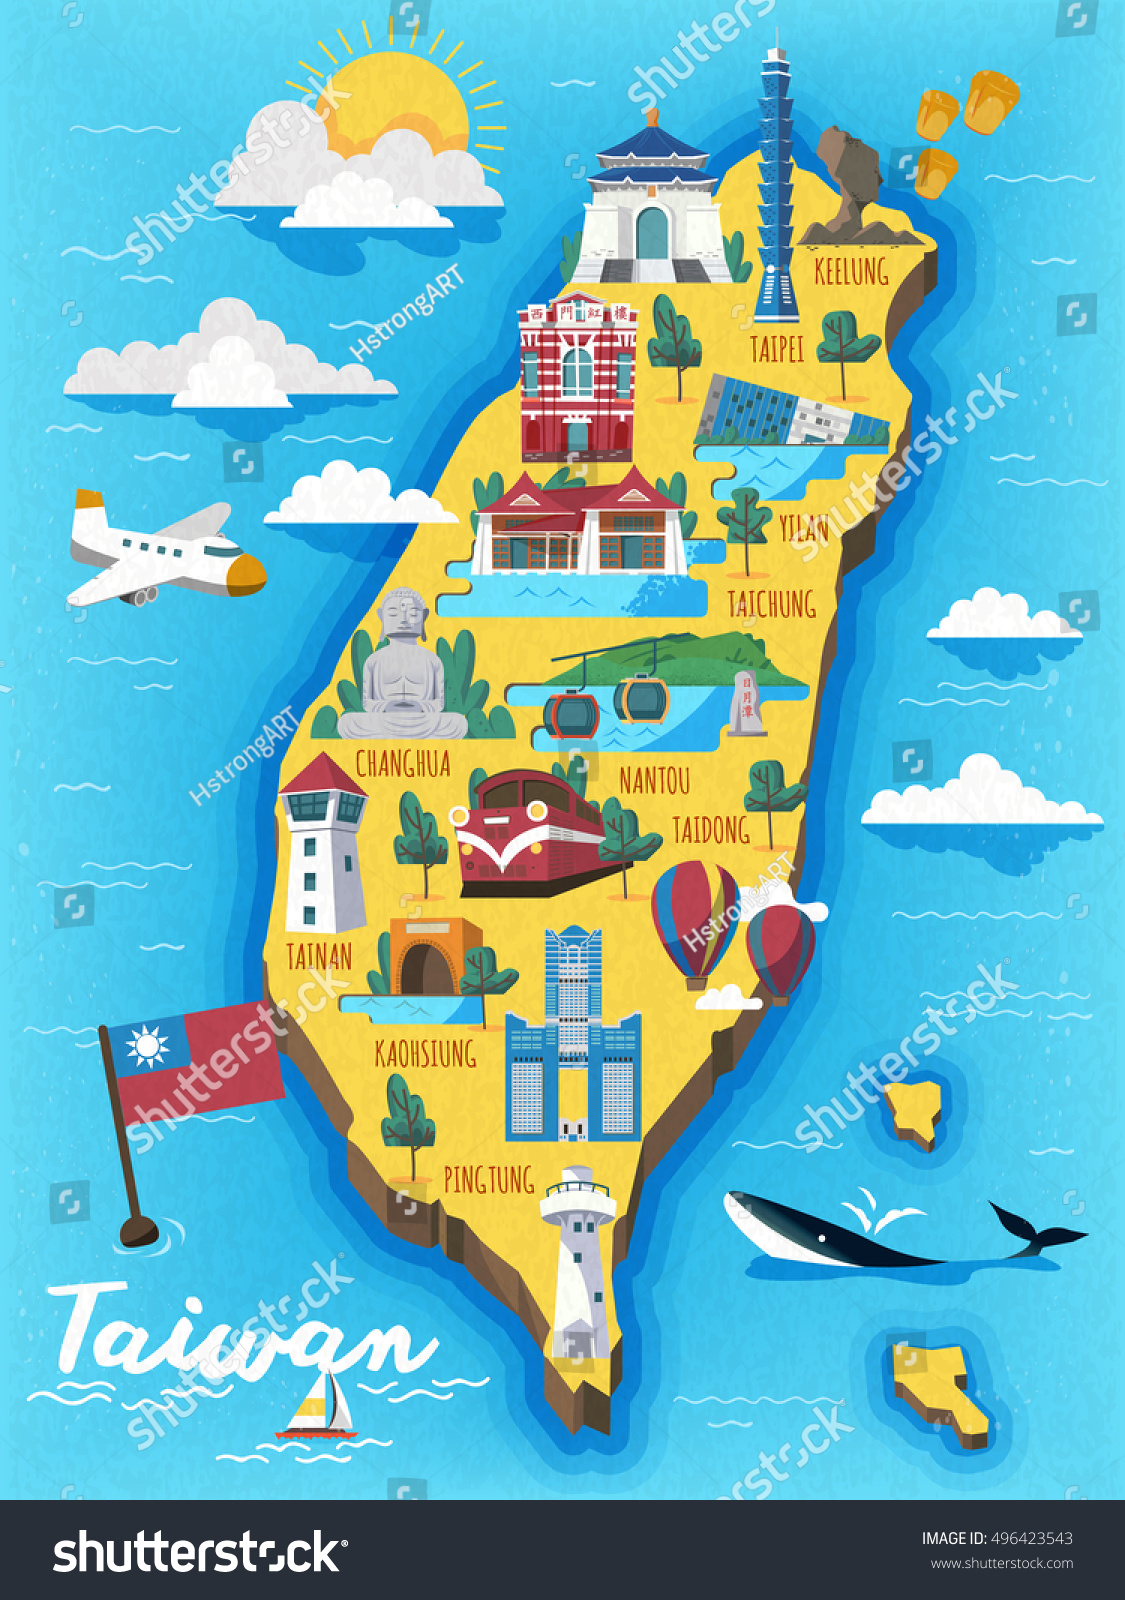 Taiwan travel map chinese words writing stock vector 496423543 taiwan travel map with chinese words writing the redhouse on the red building sciox Images